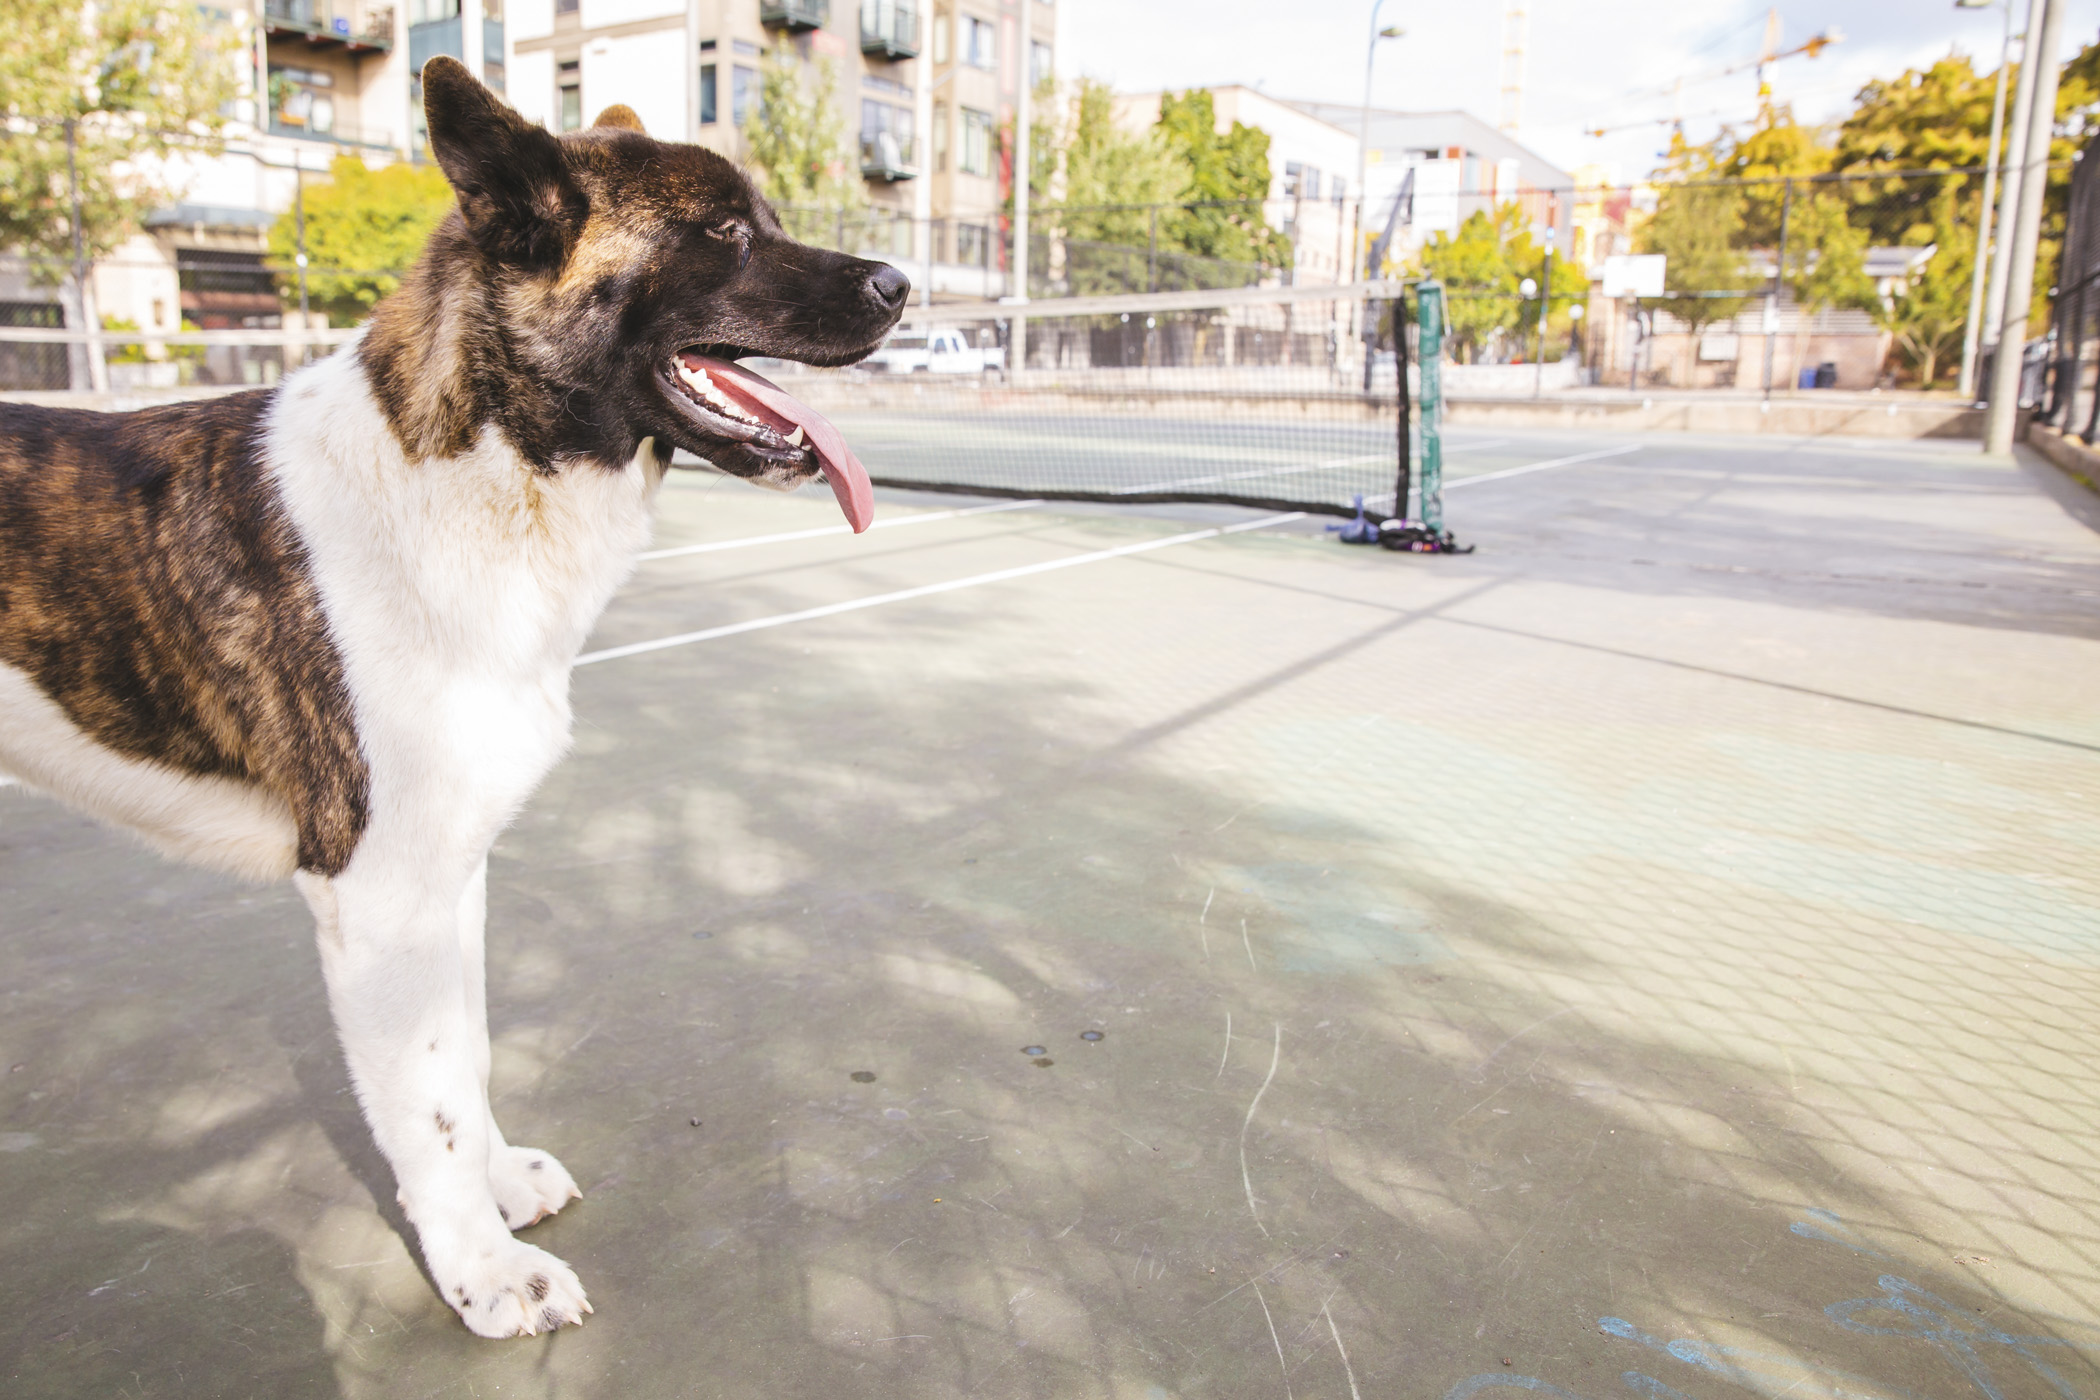 "<p>You may remember last week we featured a sweet{&nbsp;}<a  href=""http://seattlerefined.com/lifestyle/ruffined-spotlight-bella-the-akita"" target=""_blank"" title=""http://seattlerefined.com/lifestyle/ruffined-spotlight-bella-the-akita"">Akita named Bella?{&nbsp;}</a>Well this is Bella's brother, Forest.{&nbsp;} He is a pure bred American Akita and just celebrated his first birthday in September. Forest likes belly rubs, running in circles and playing chase with other dogs. Forest dislikes rakes, wheelbarrows, the lawn mower and basically any gardening equipment.{&nbsp;}The Seattle RUFFined Spotlight is a weekly profile of local pets living and loving life in the PNW. If you or someone you know has a pet you'd like featured, email us at hello@seattlerefined.com or tag #SeattleRUFFined and your furbaby could be the next spotlighted! (Image: Sunita Martini / Seattle Refined).</p>"